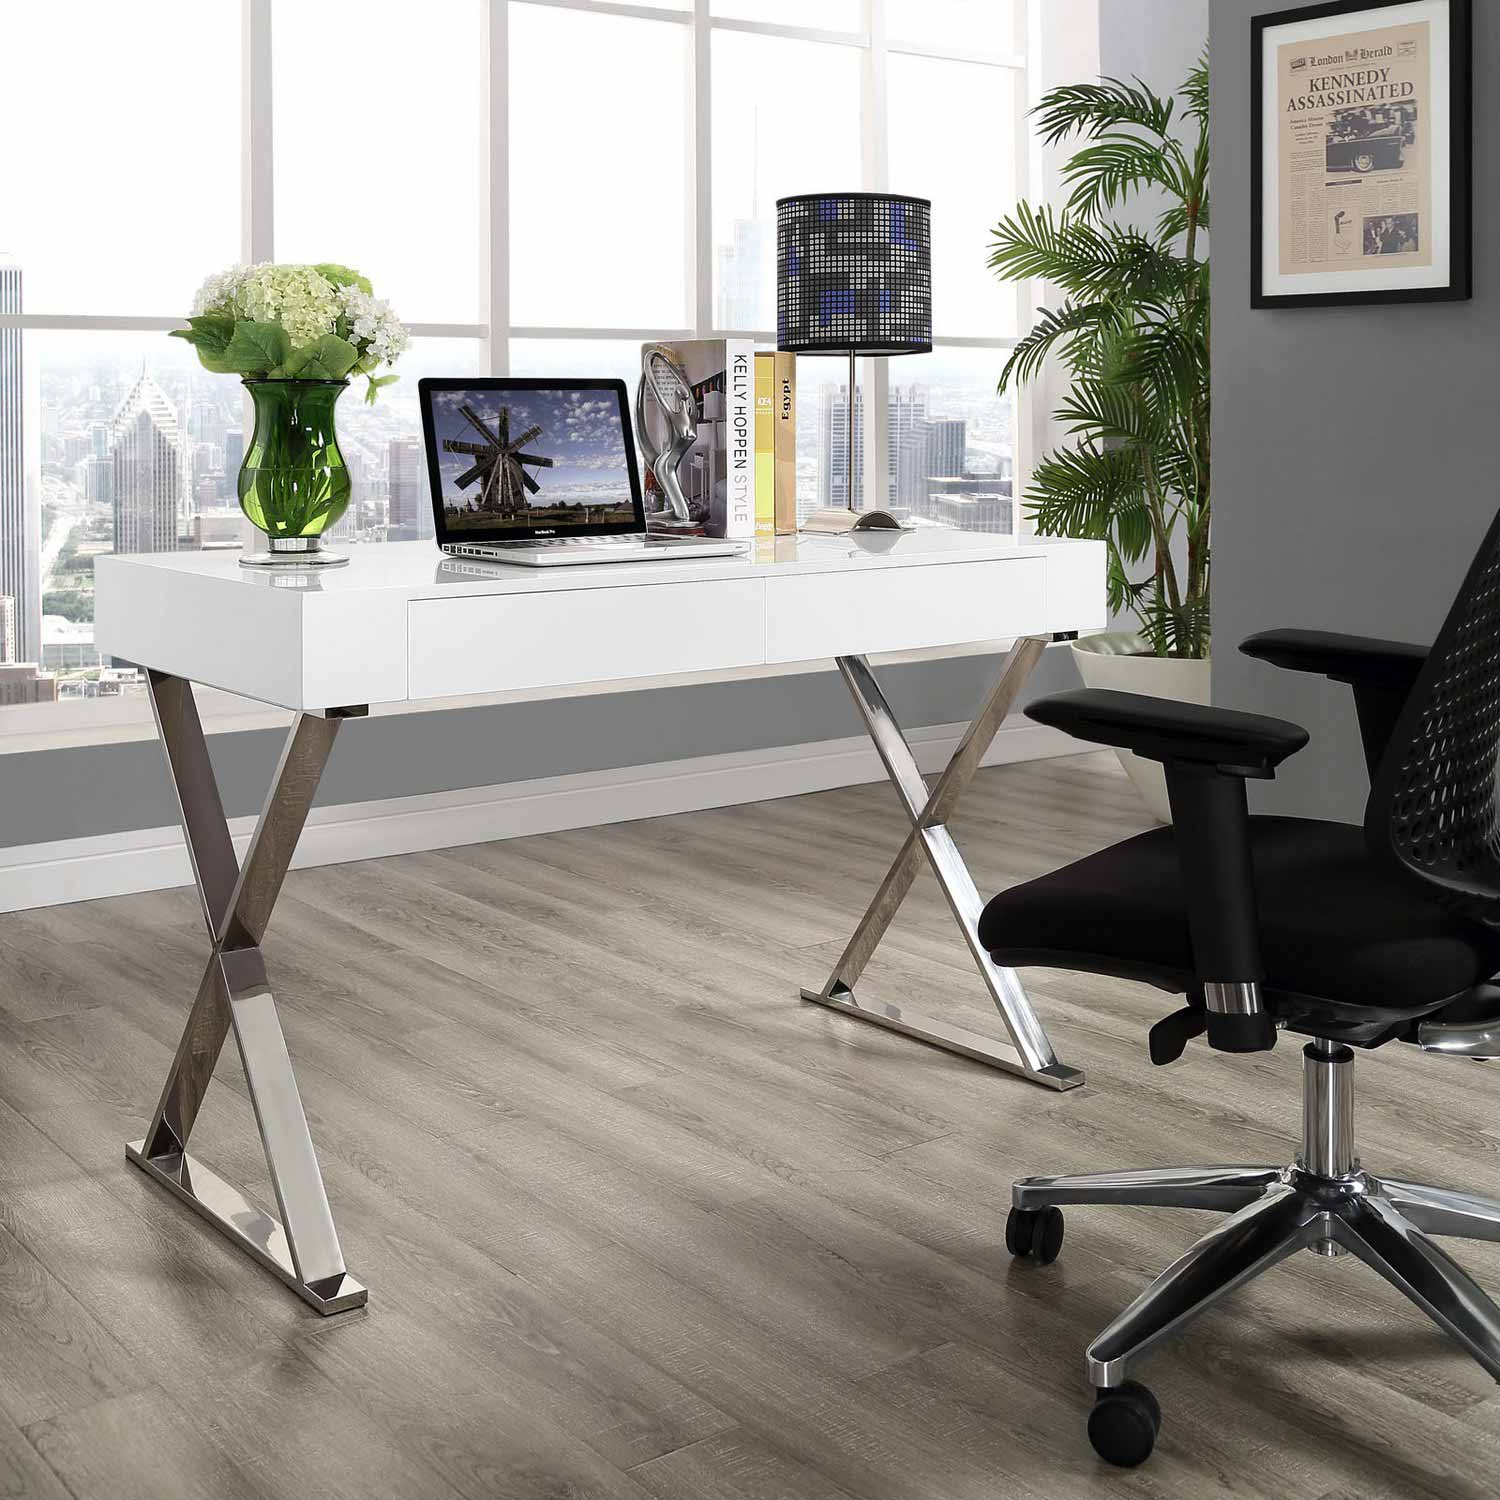 Modway Sector Office Desk - White